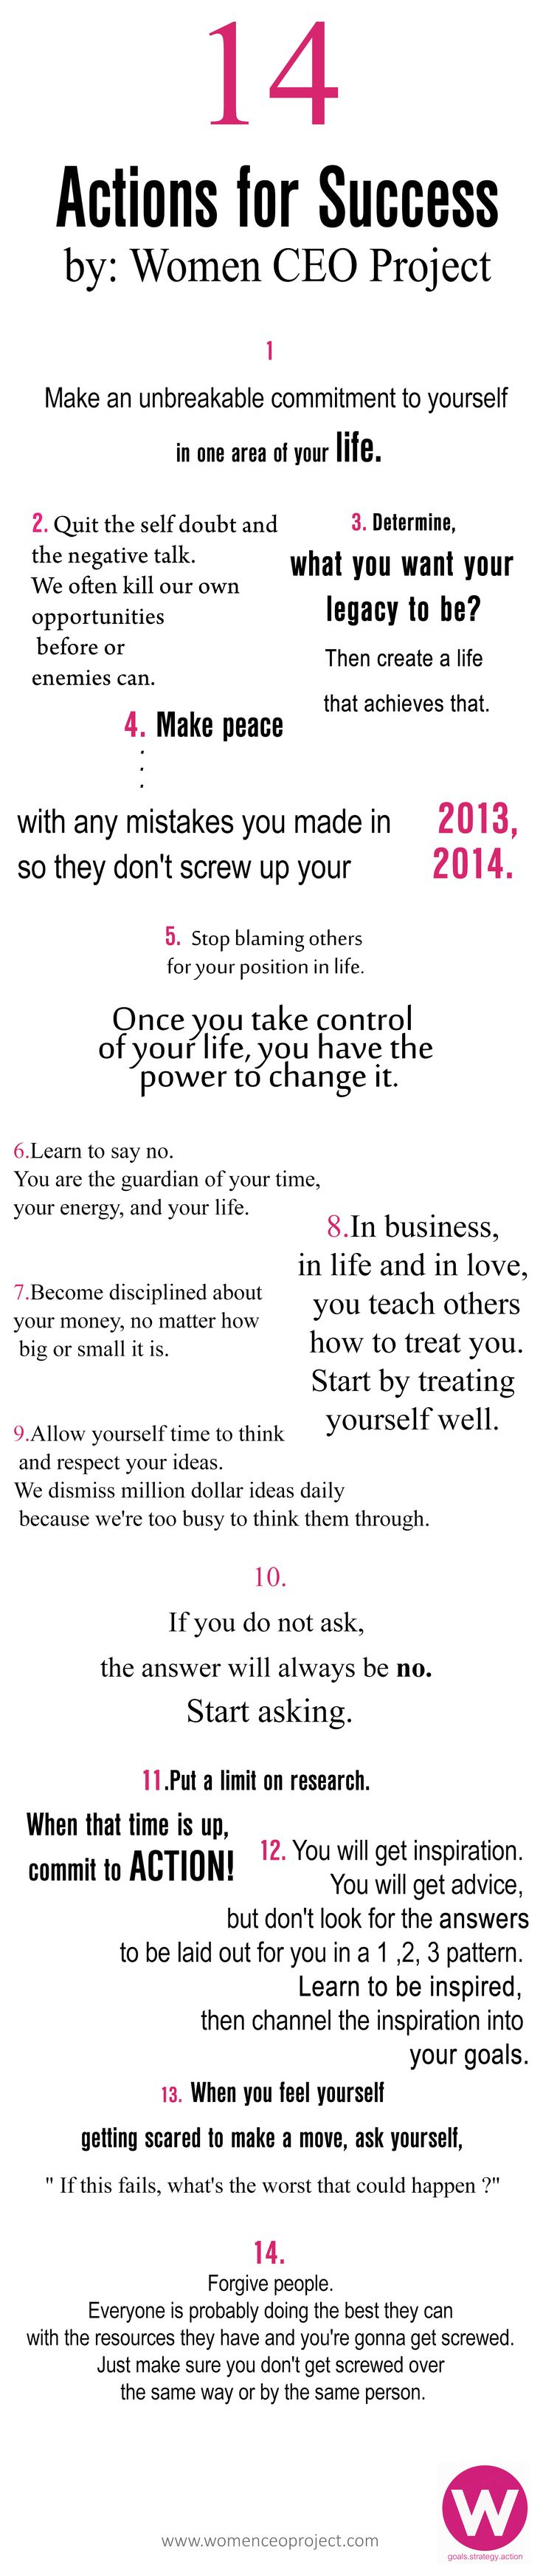 14 Actions for 2014 Success --->#pic www.womenceoproject.com/mastermind